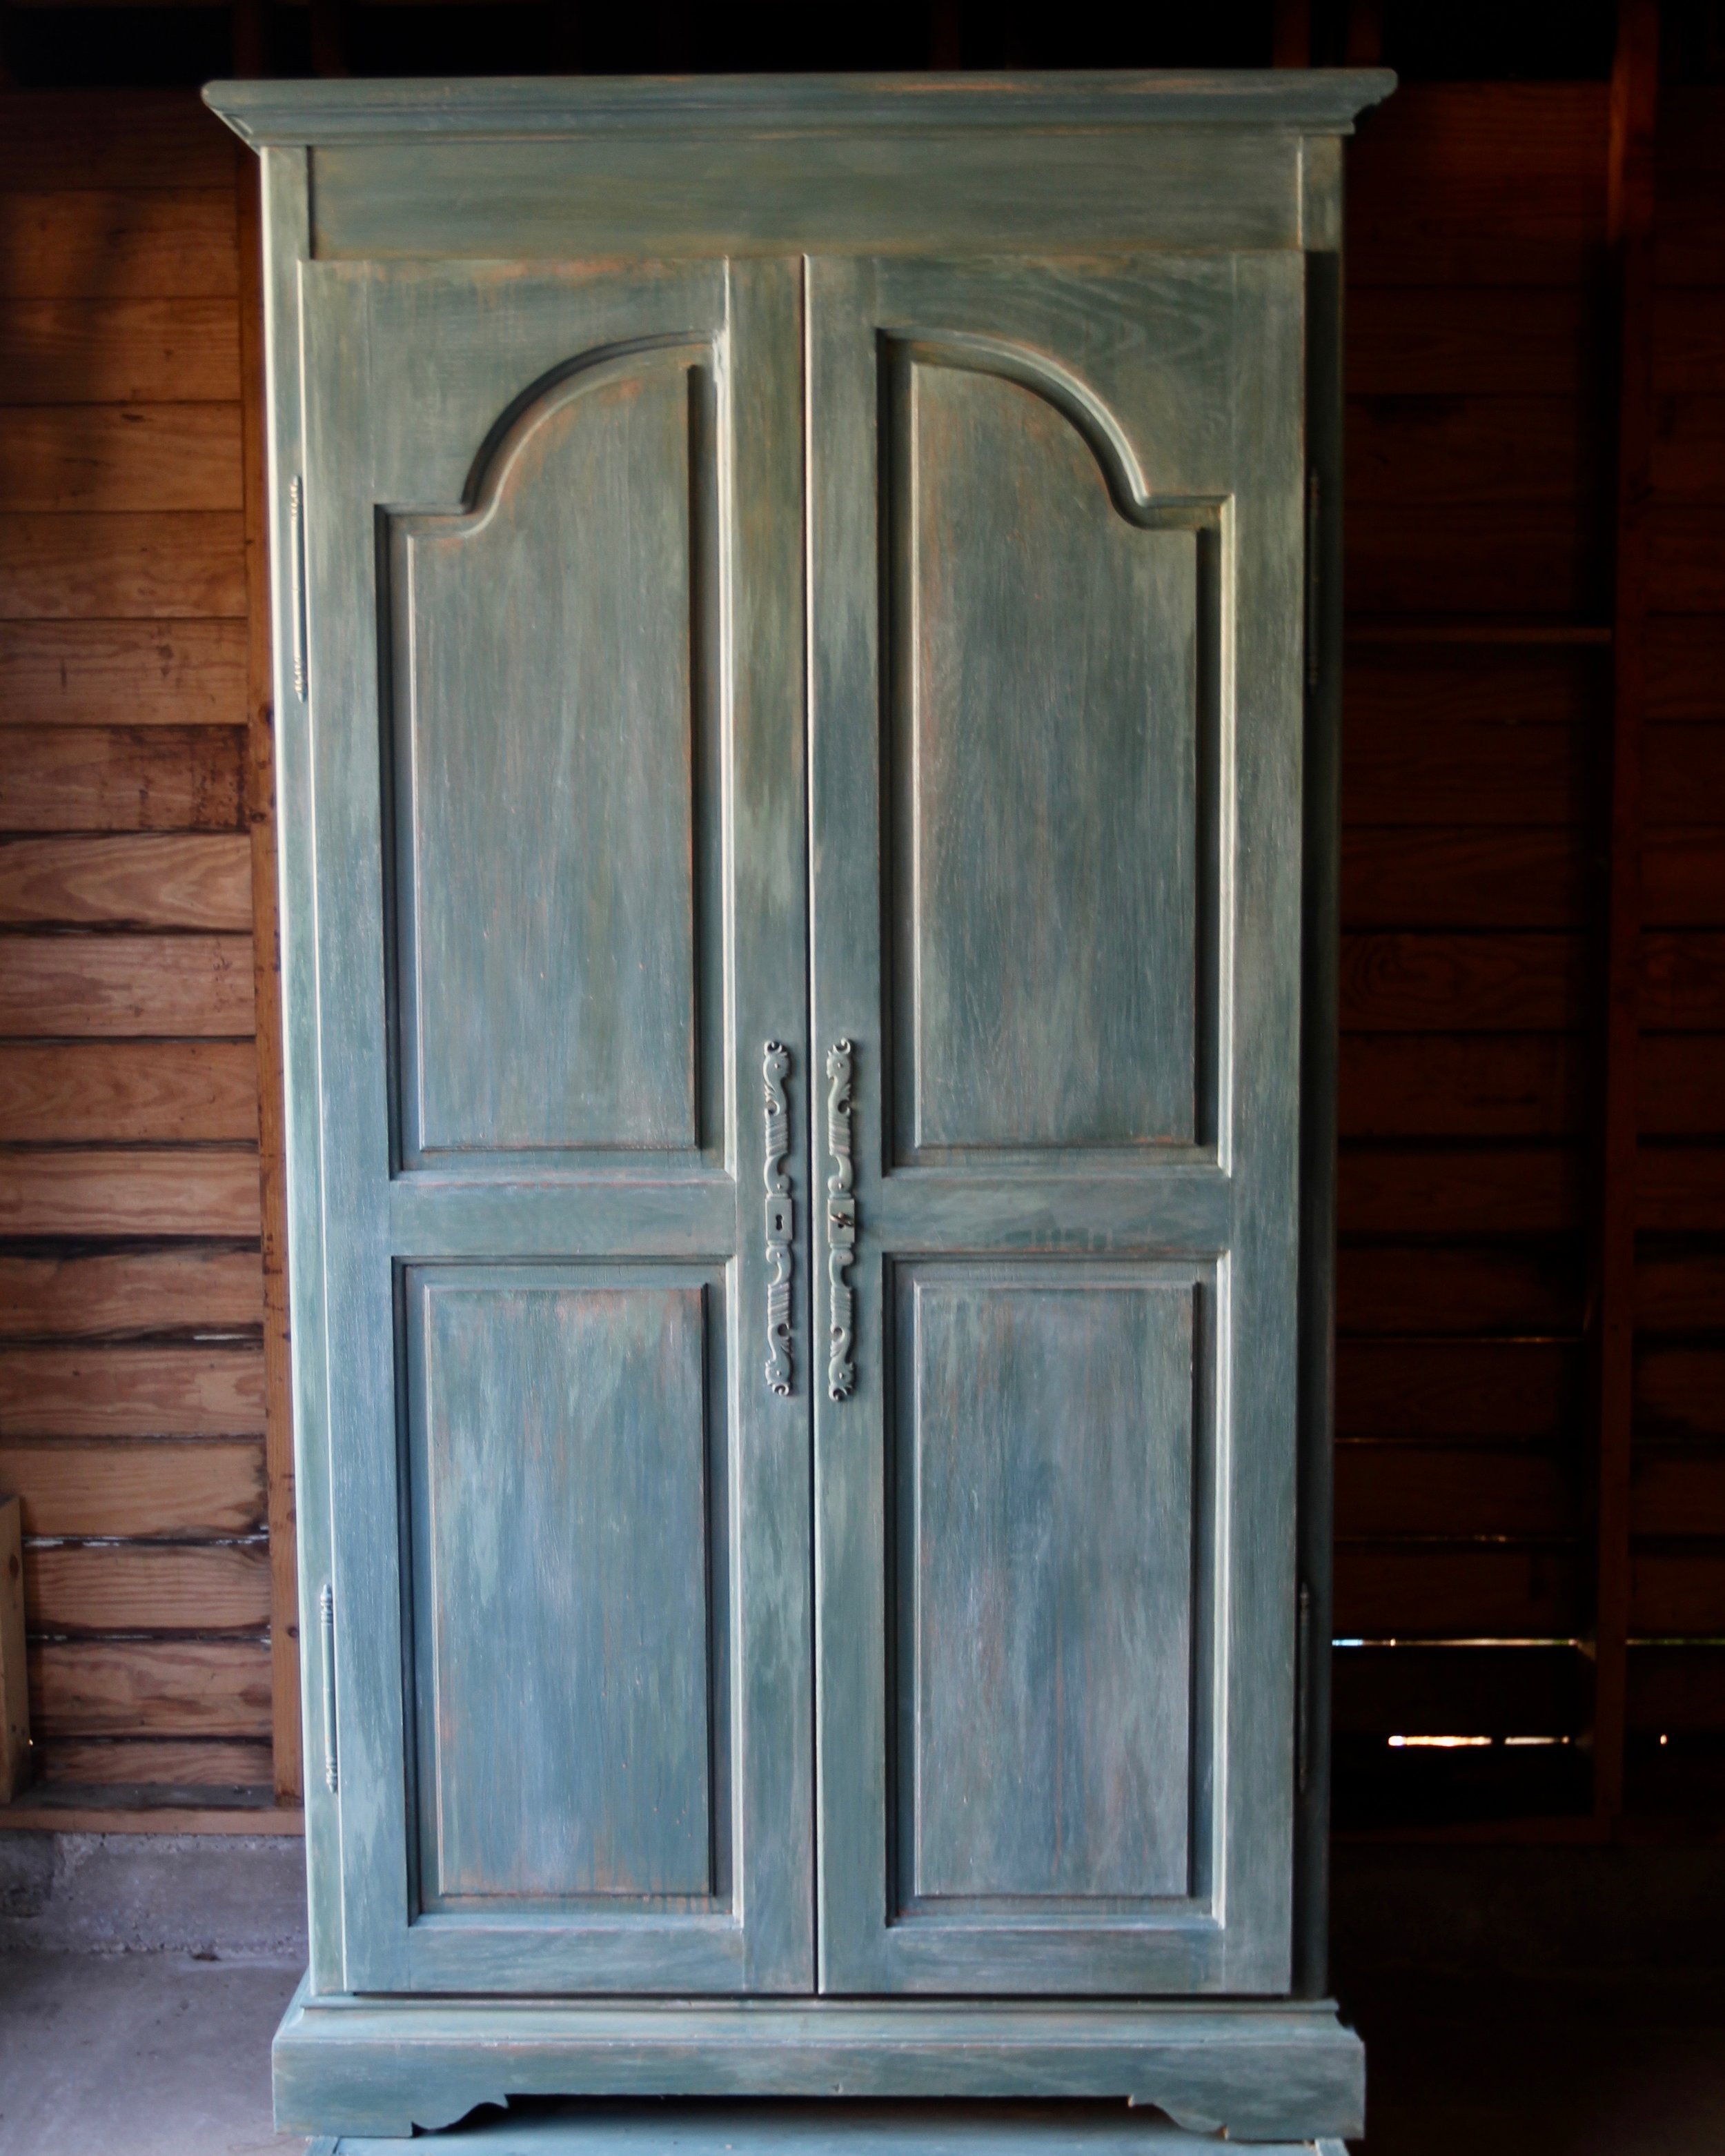 jo-torrijos-a-simpler-design-painted-furniture-dallas-texas-layered-paint-technique-green-armoire-2.jpg